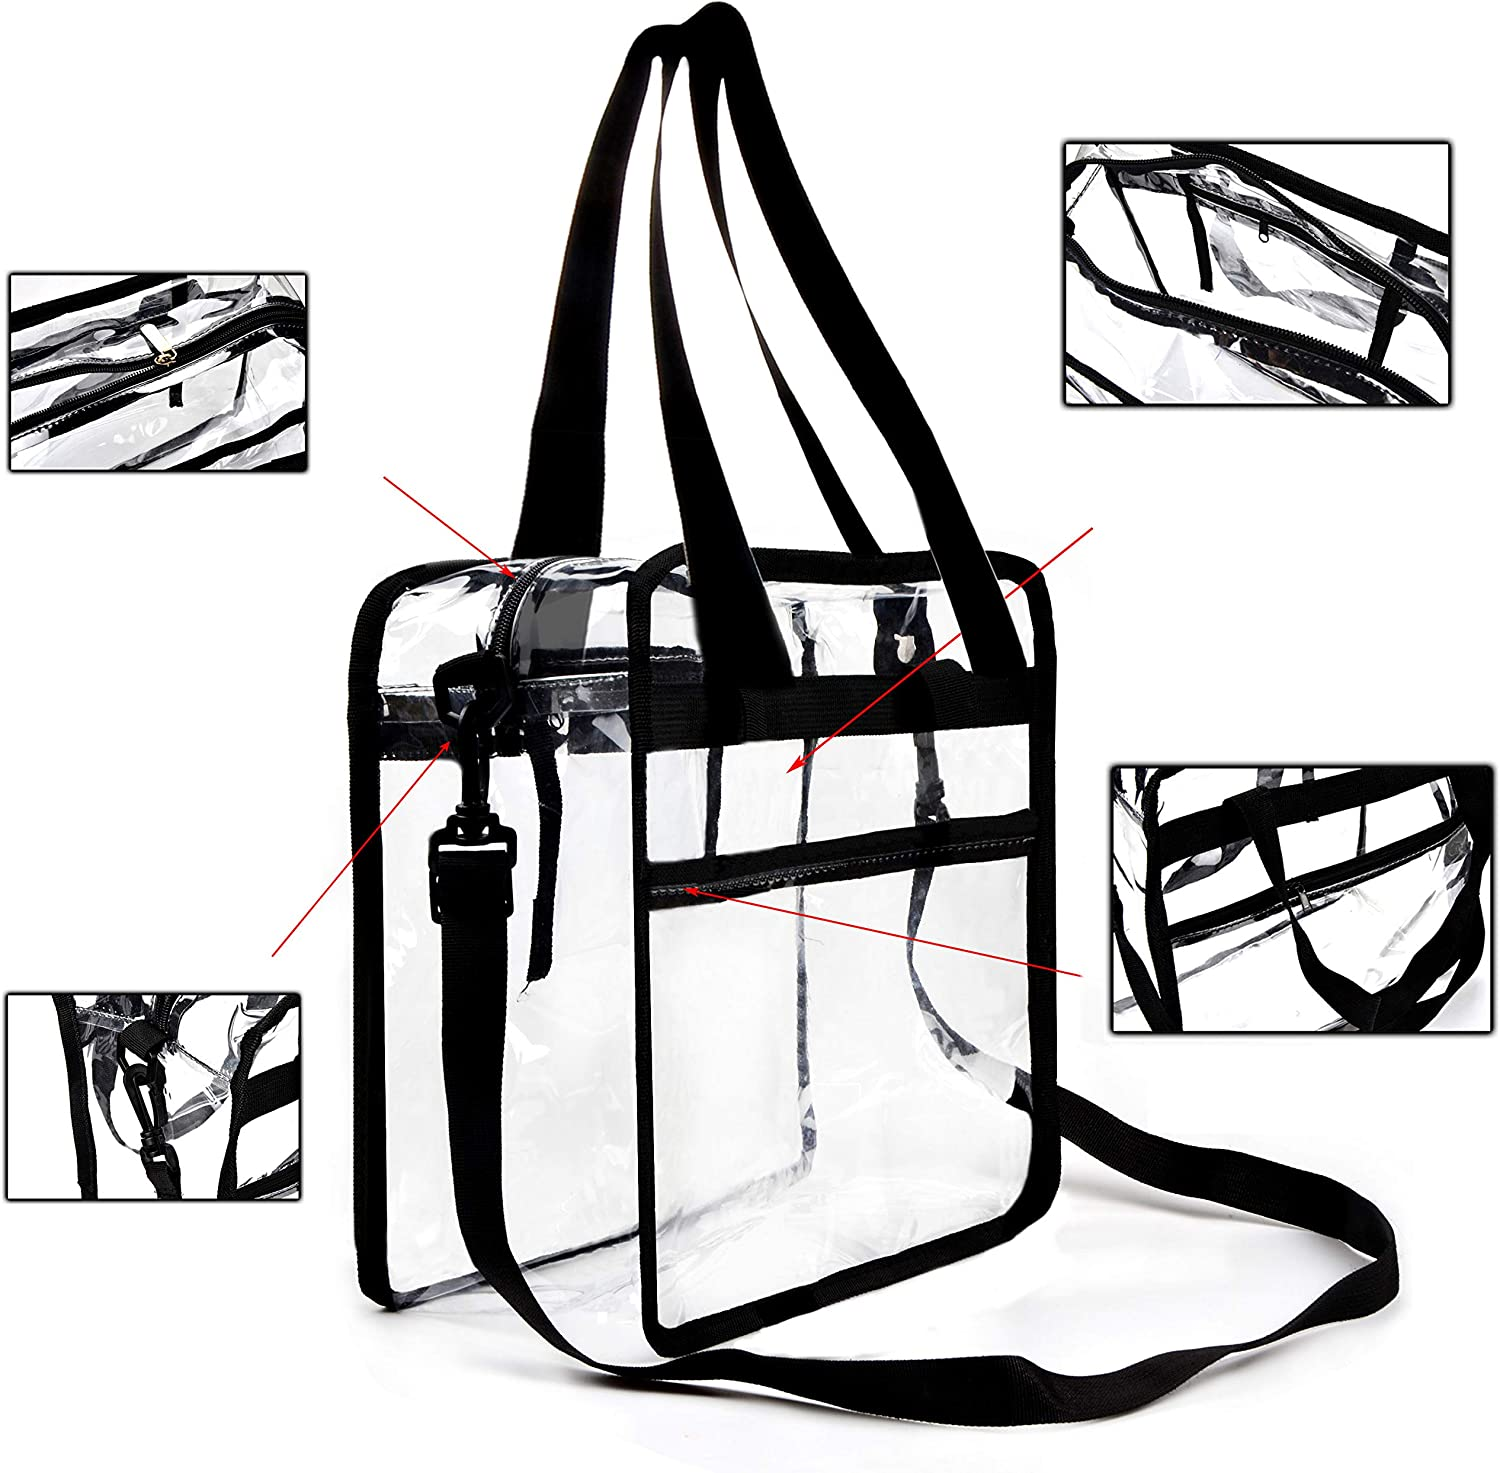 Youngever Clear Bag 12 X 12 X 6, Stadium Approved, Clear Tote Bag, Heavy Duty, Shoulder Straps and Zippered Top and Inside